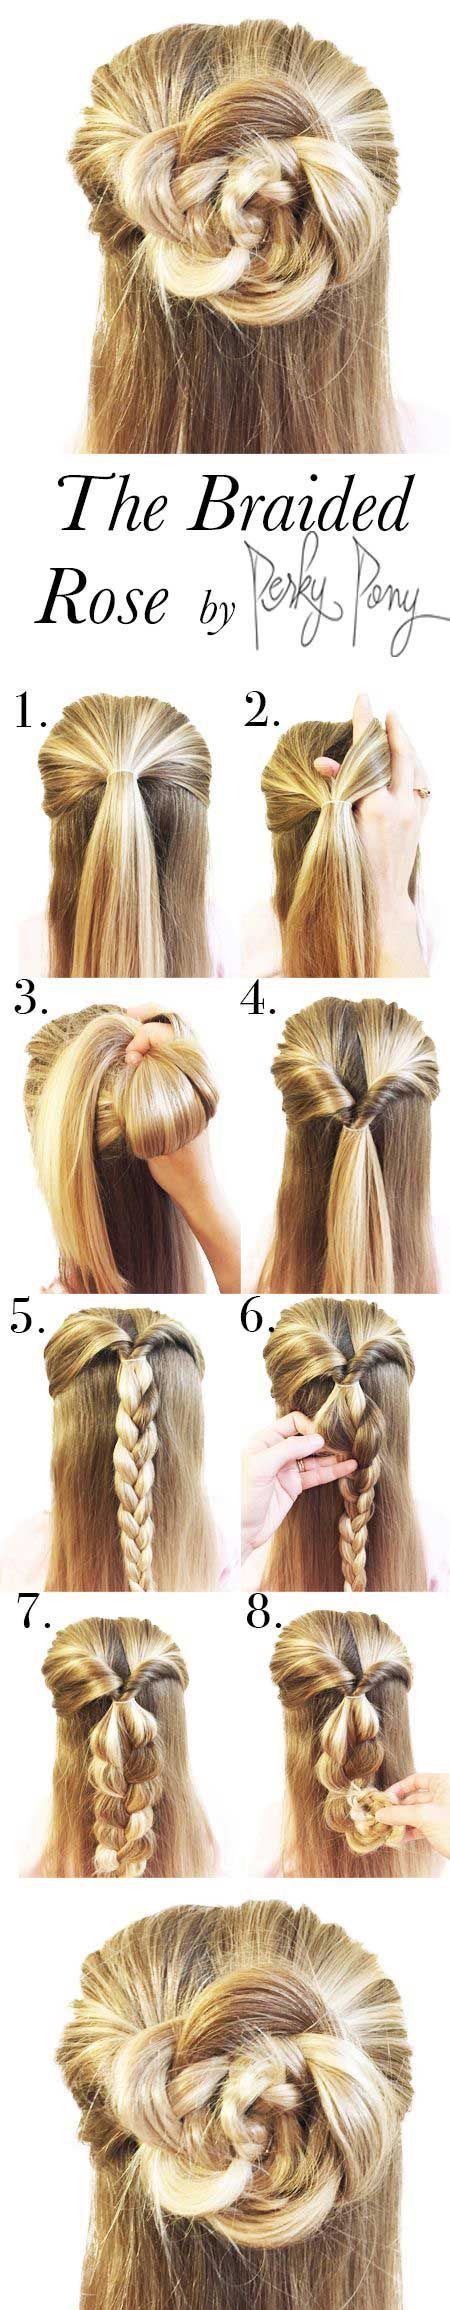 best школа images on pinterest hairstyle ideas cute hairstyles